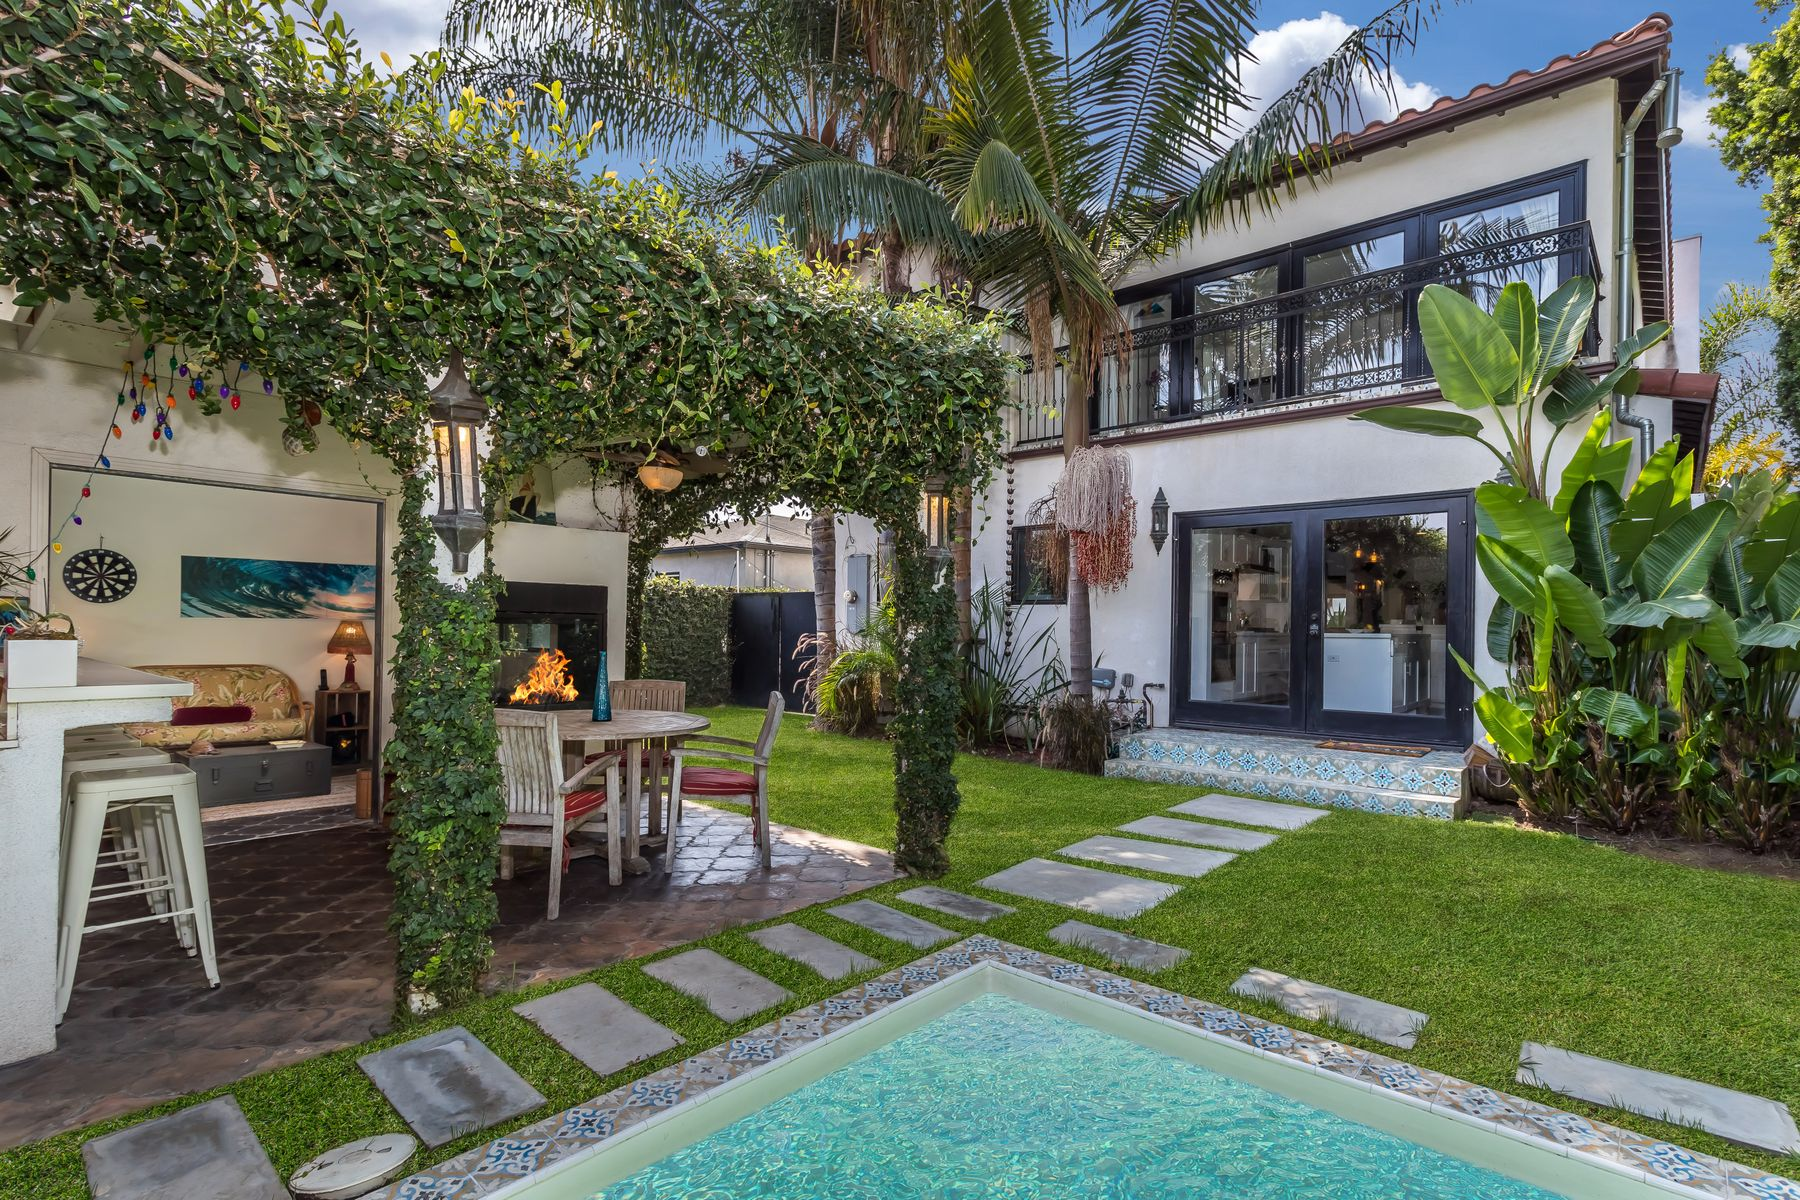 Single Family Homes for Sale at Best Value in the Venice Golden Triangle 2924 Yale Avenue Venice, California 90292 United States